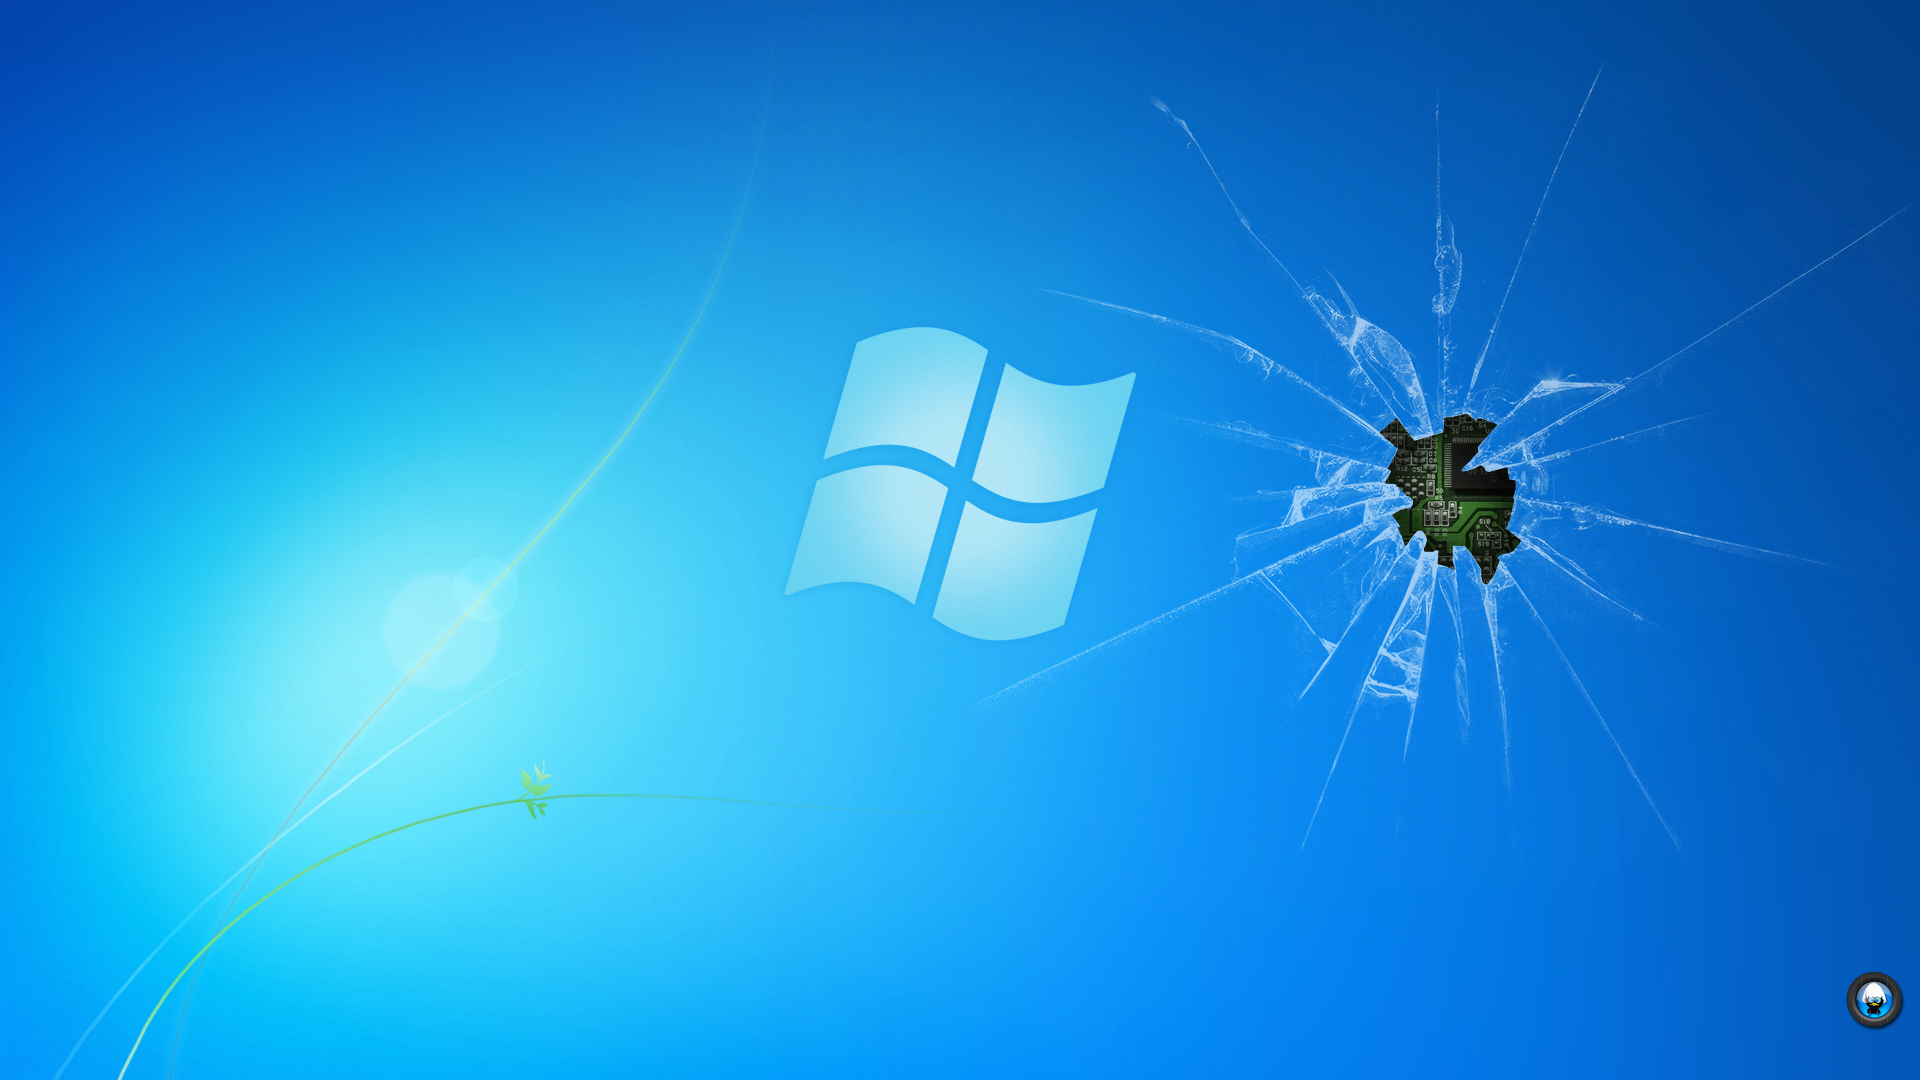 Cracked-Screen-Background-free-Pixels-Talk-×-Broken-wallpaper-wpc9203881